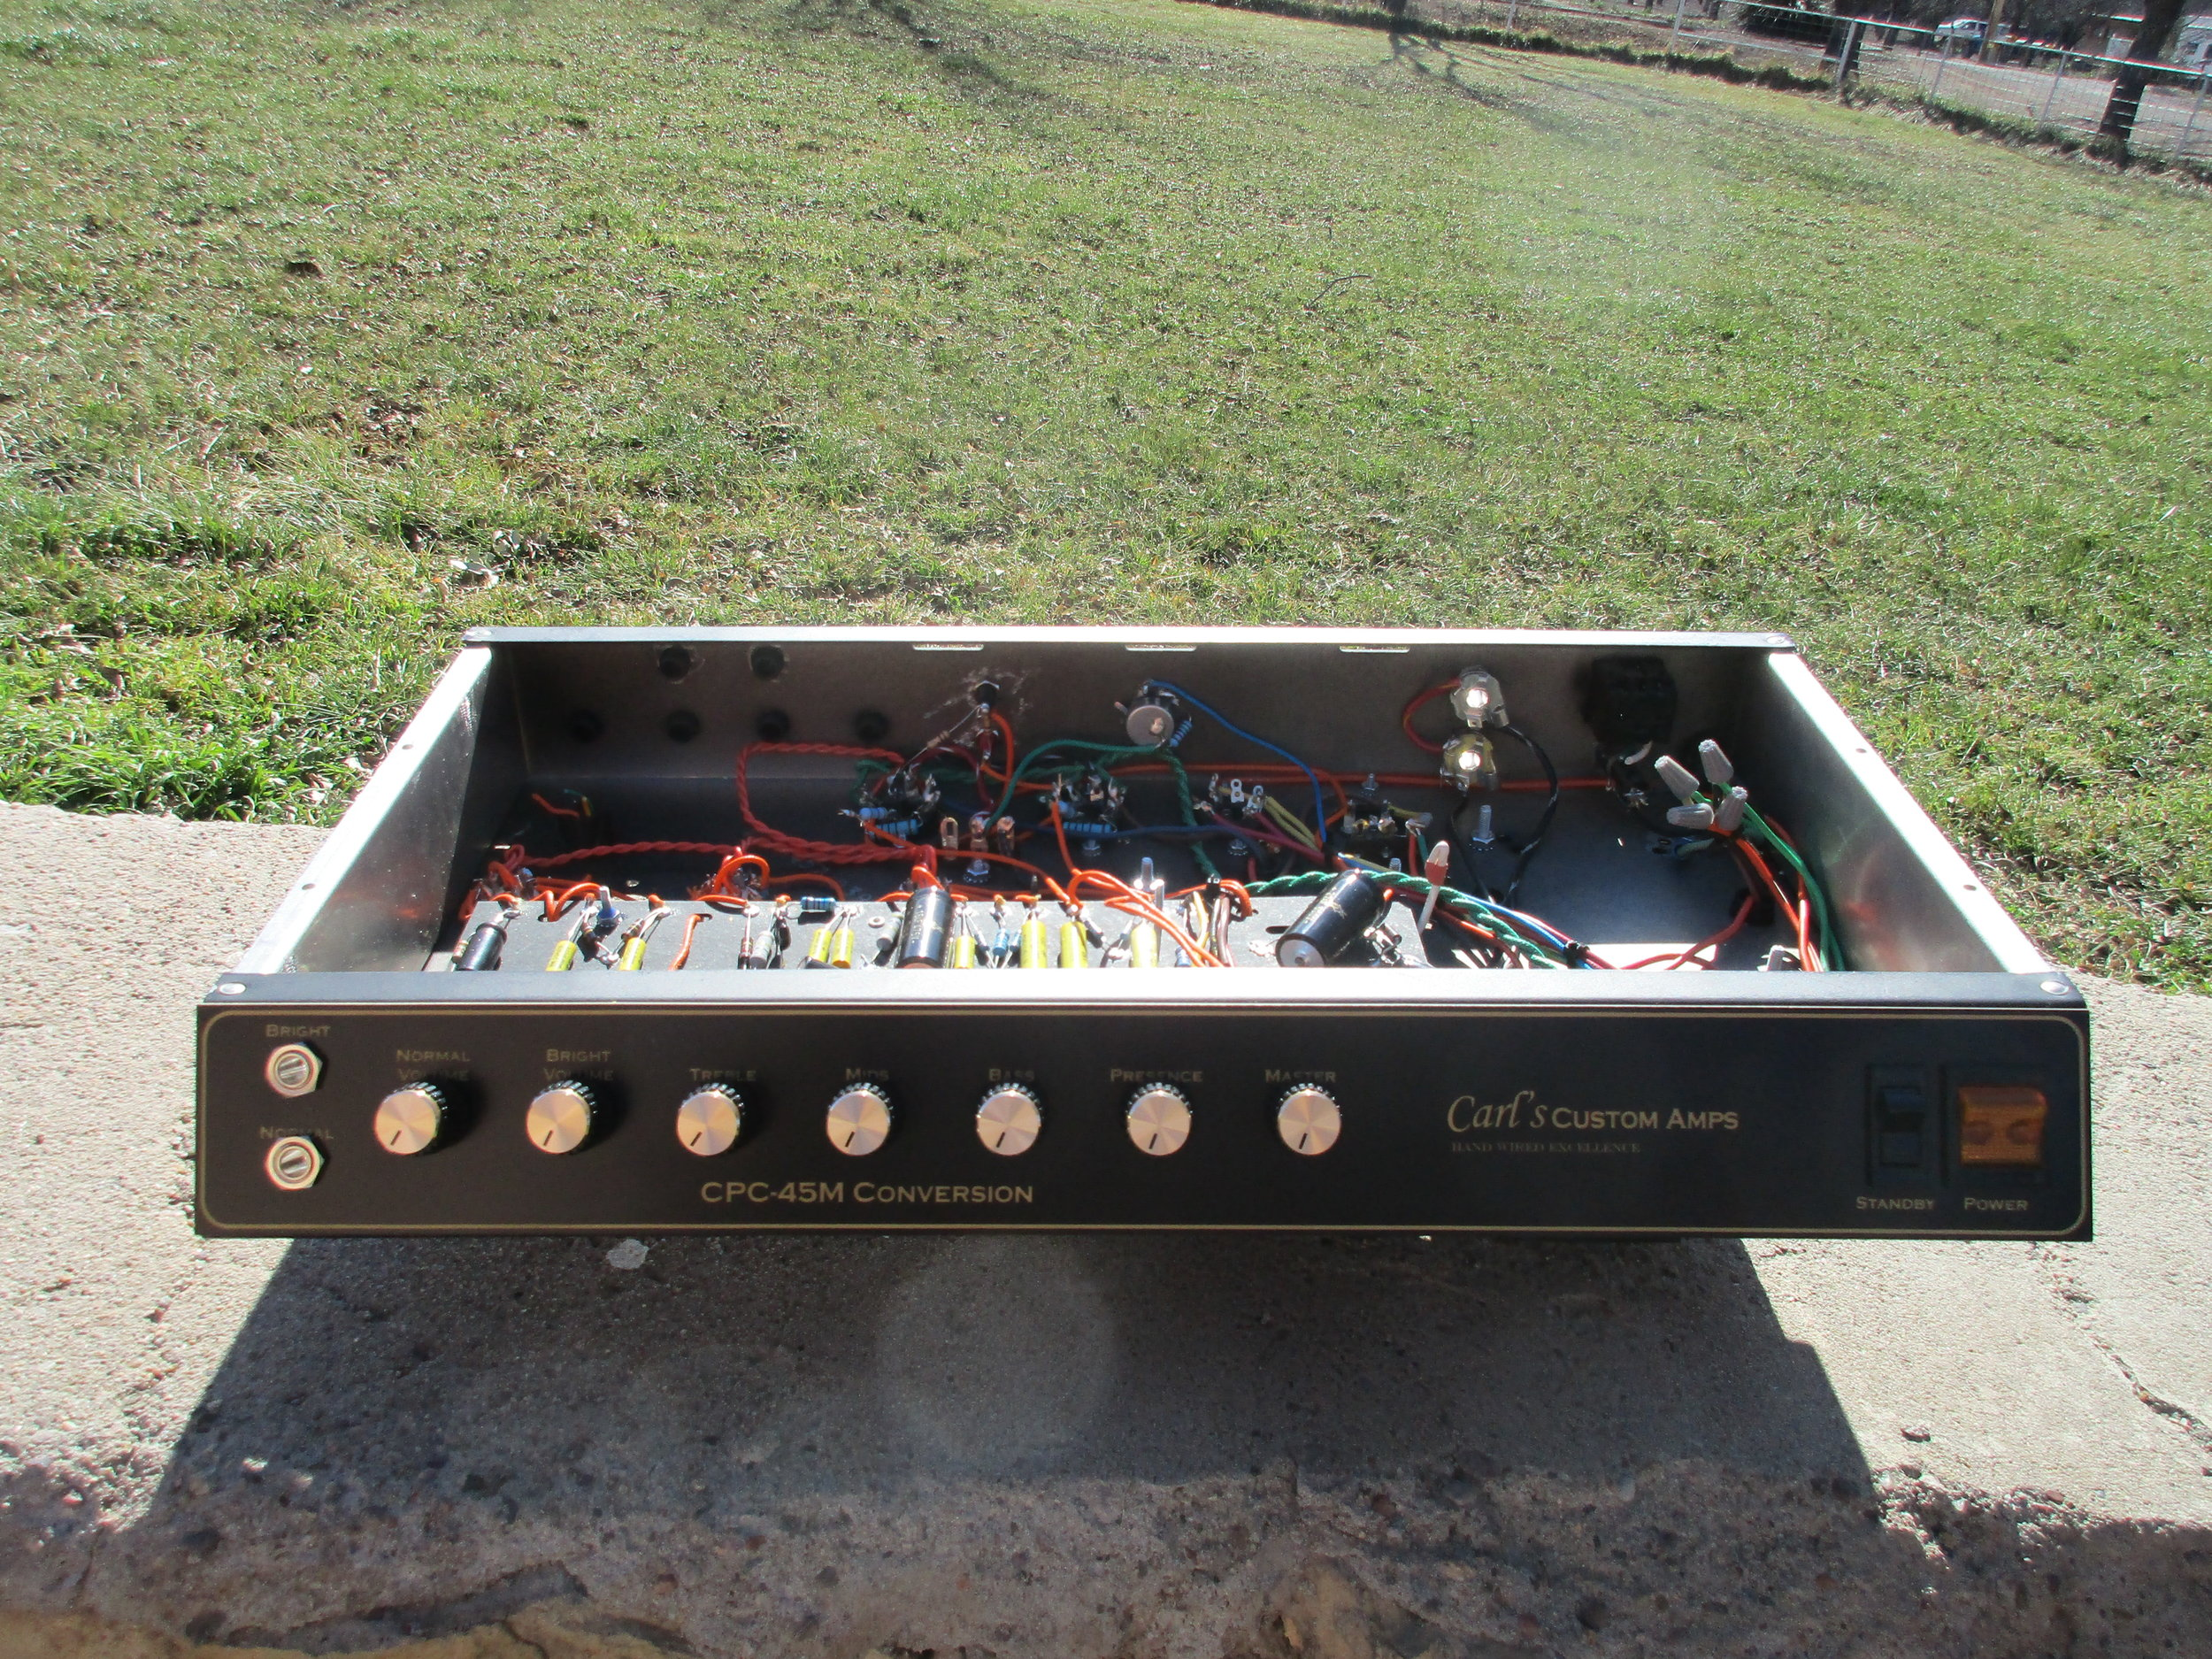 I did this one quite awhile ago. I converted this old Dean Markley in JTM-45 style amp with single input for each channel. Great sounding amp!!